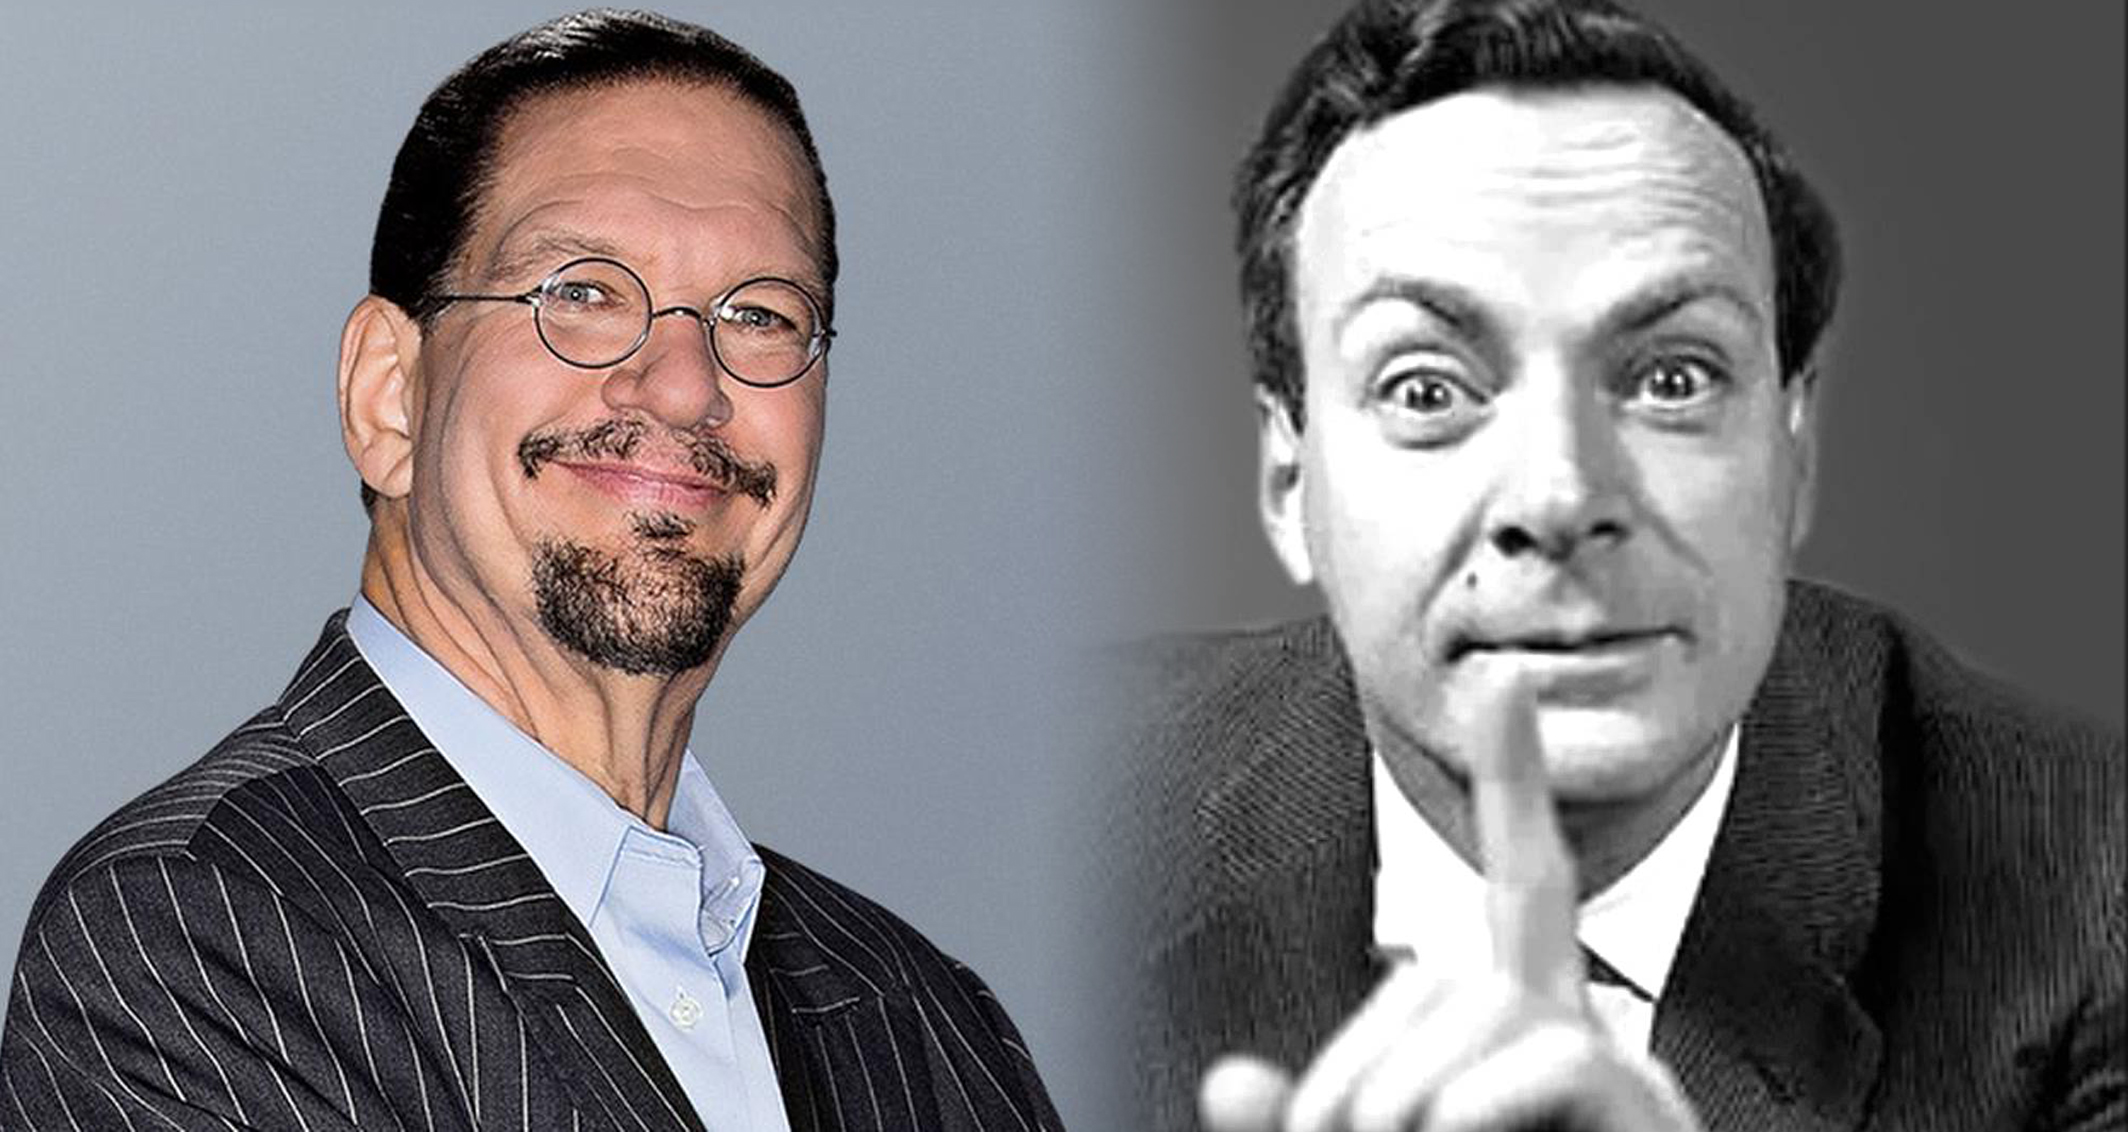 Penn Jillette and Richard Feynman | toddregoulinsky.com